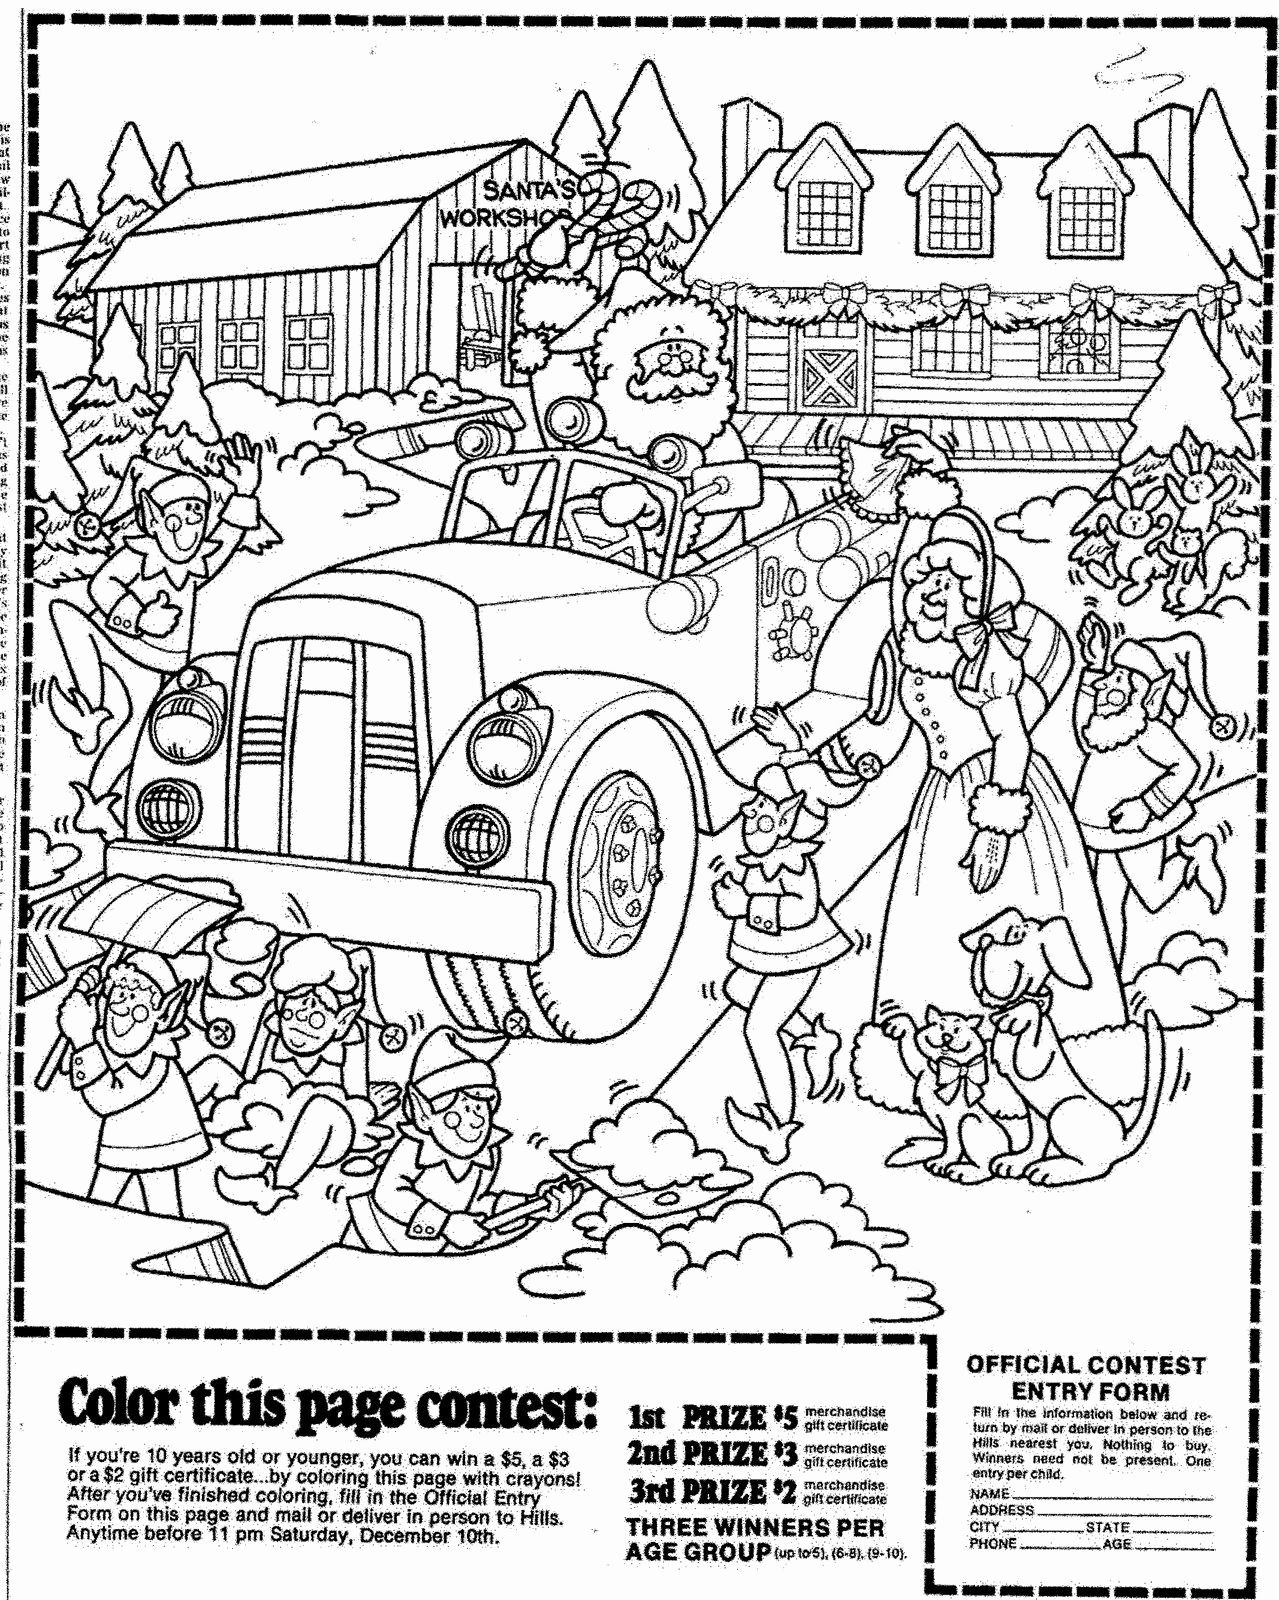 Fall Older Kids Coloring Pages Coloring Contest Christmas Colors Christmas Coloring Books [ 1600 x 1279 Pixel ]